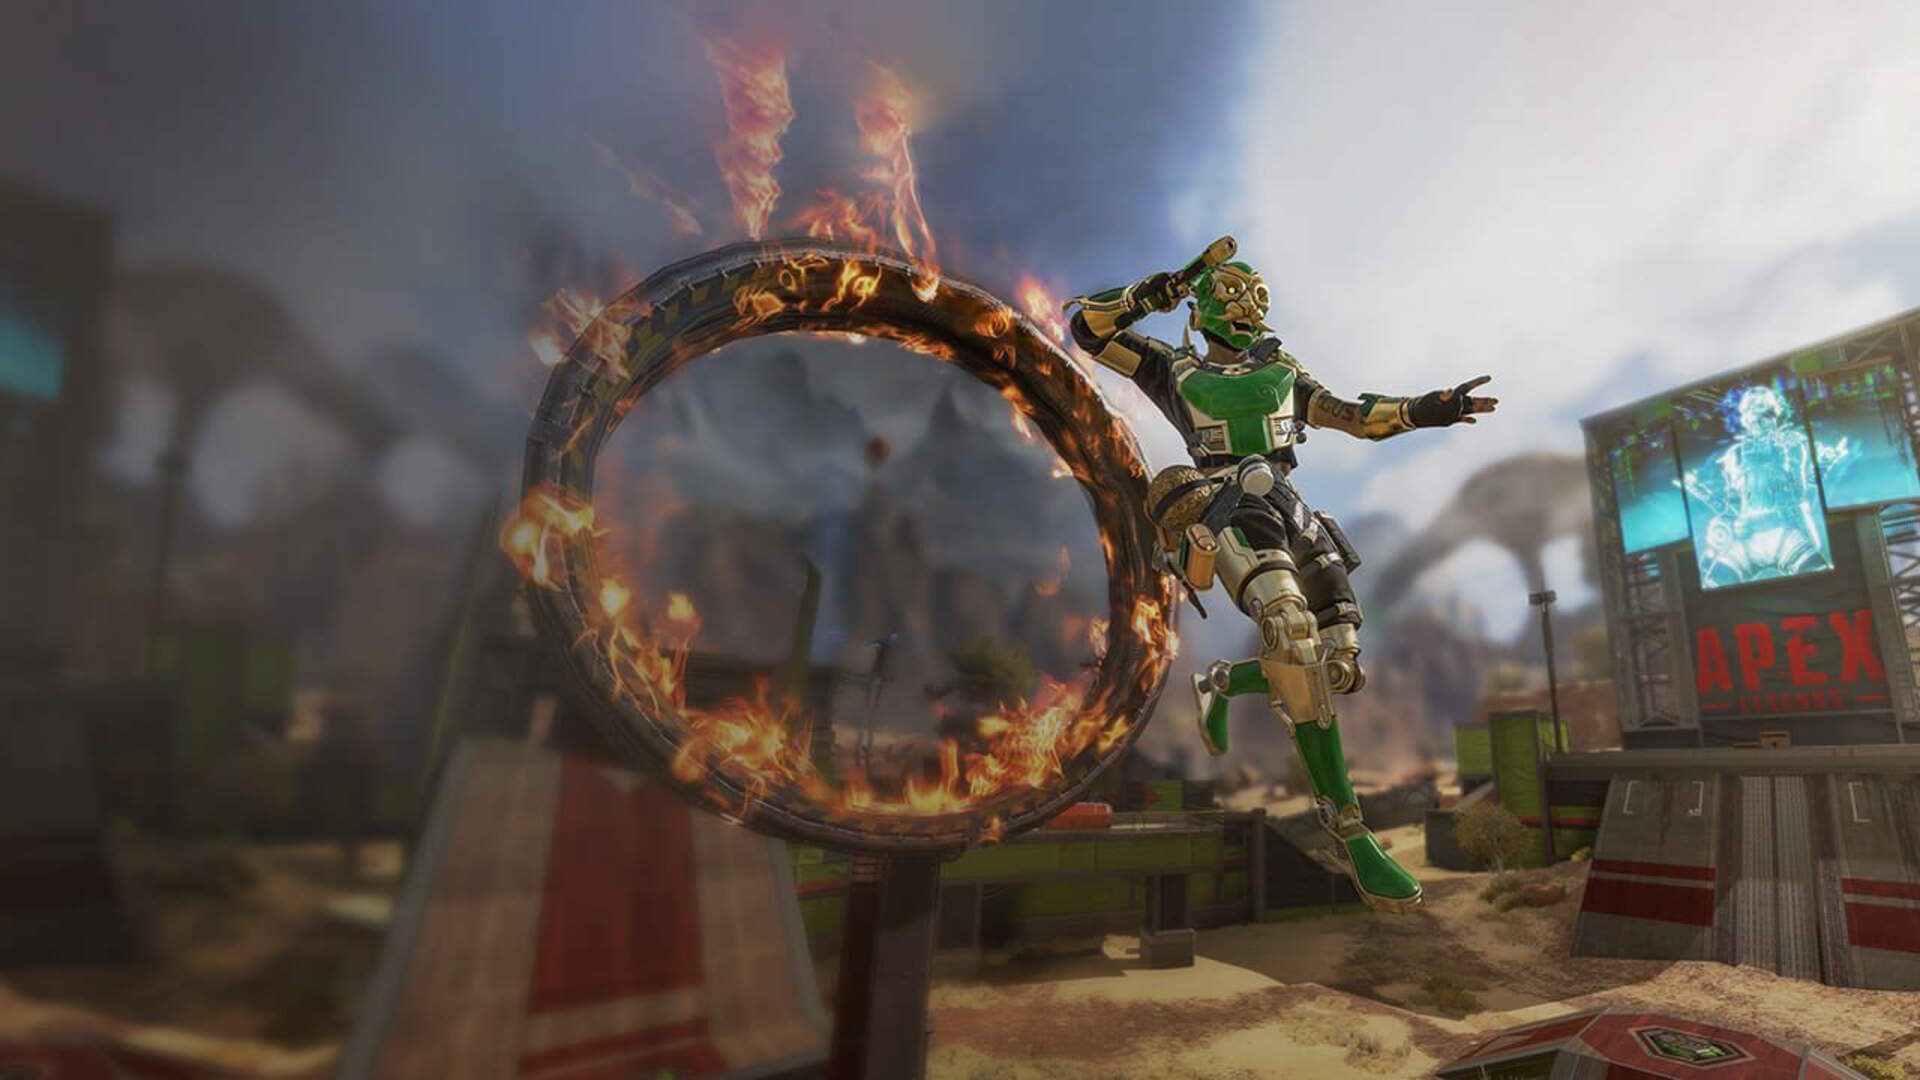 Respawn Says It's Addressing Criticisms of Apex Legends' Iron Crown with Future Events